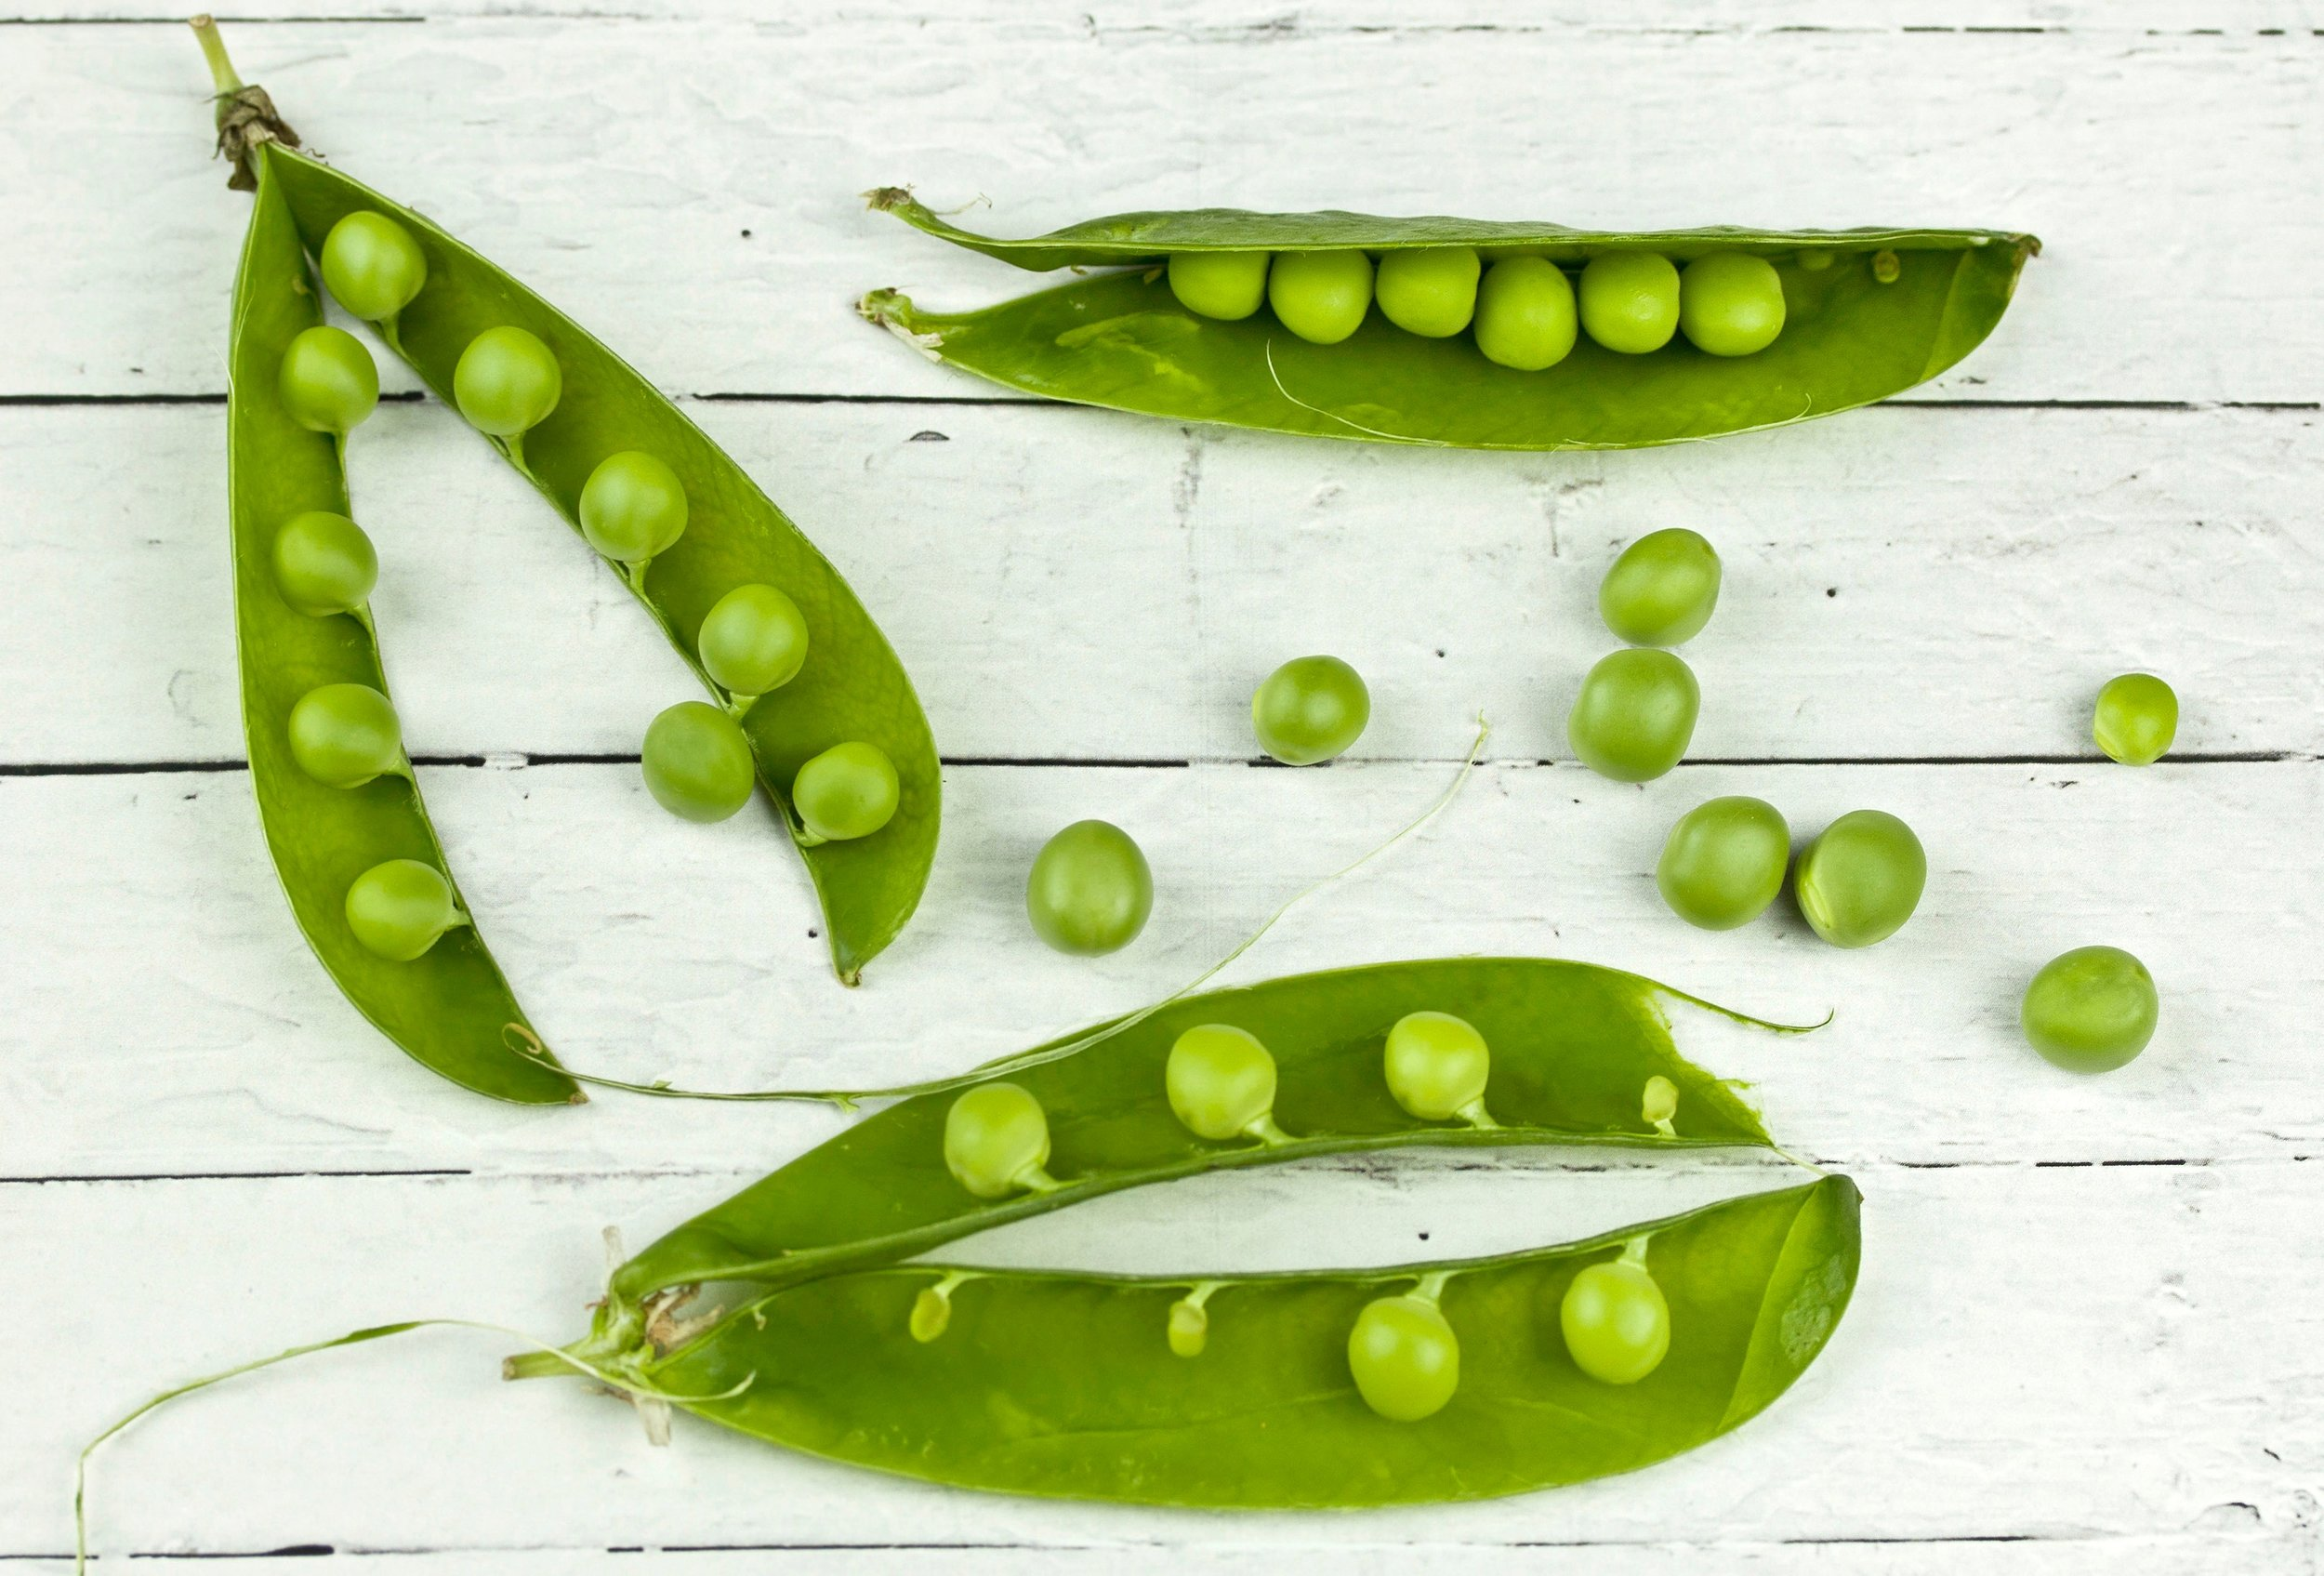 Freshly shelled peas have such a satisfying crunch. Cook them with butter and mint, and serve them up as the crisp side dish to your favorite hearty meal.